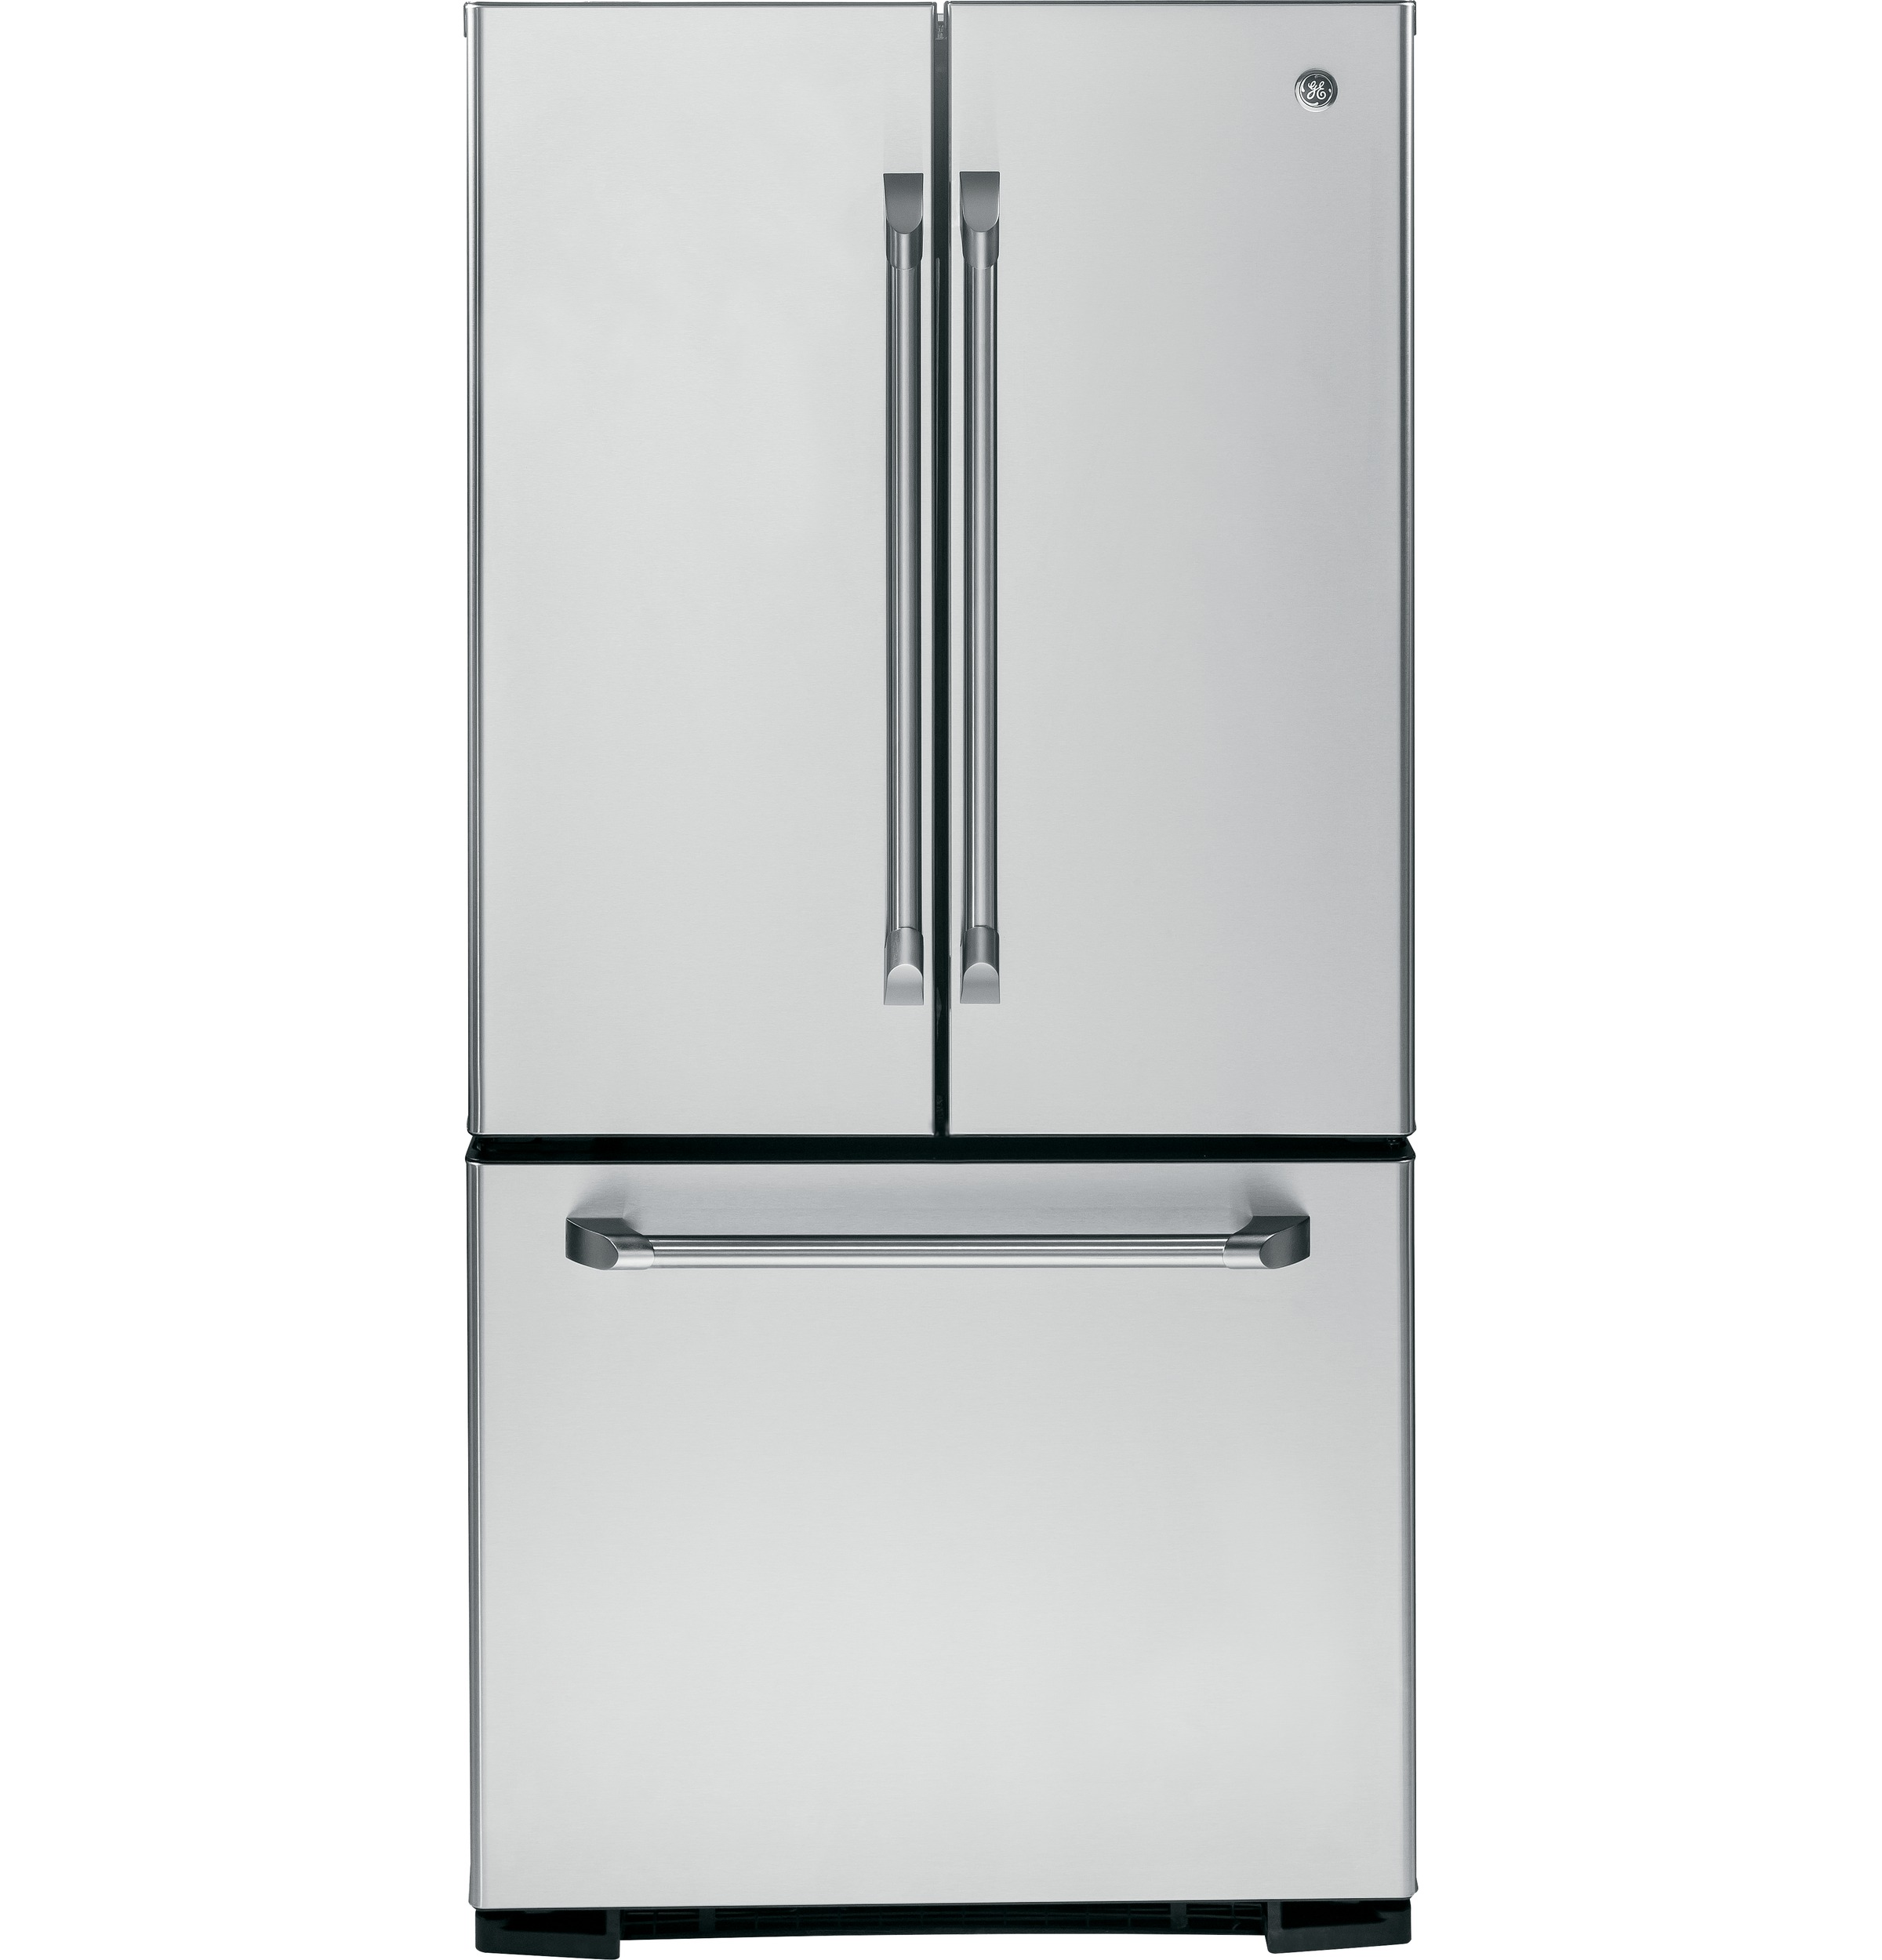 Ge Caf Series 227 Cu Ft French Door Refrigerator With Internal